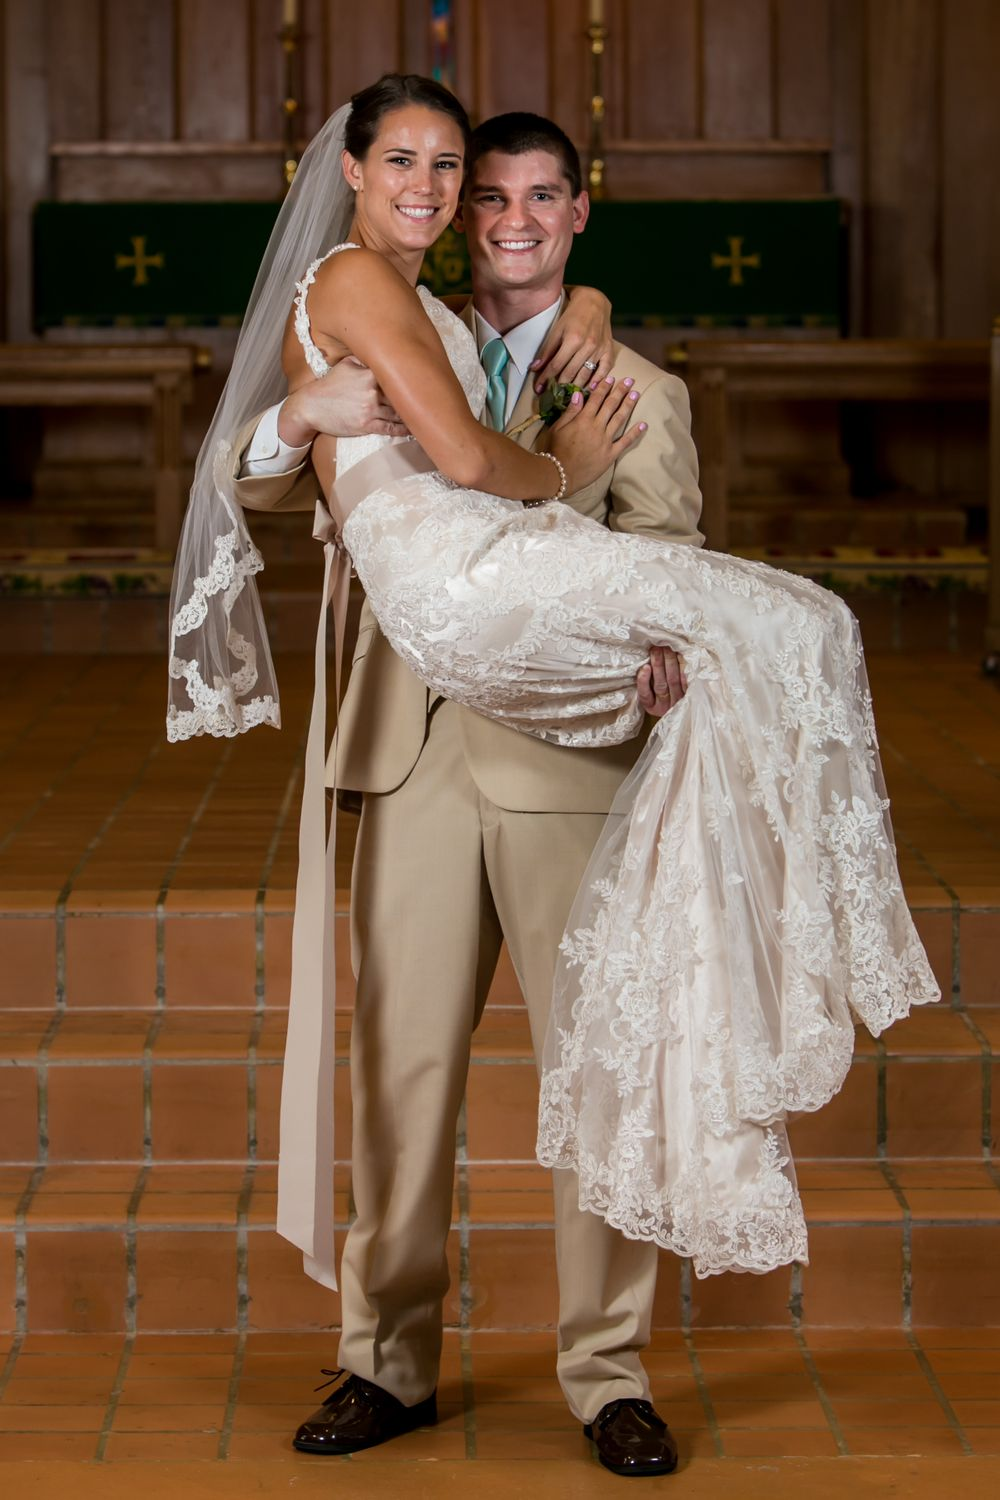 Groom Mike scoops up bride Alex following their wedding ceremony at Incarnation Lutheran Church in Columbia, SC